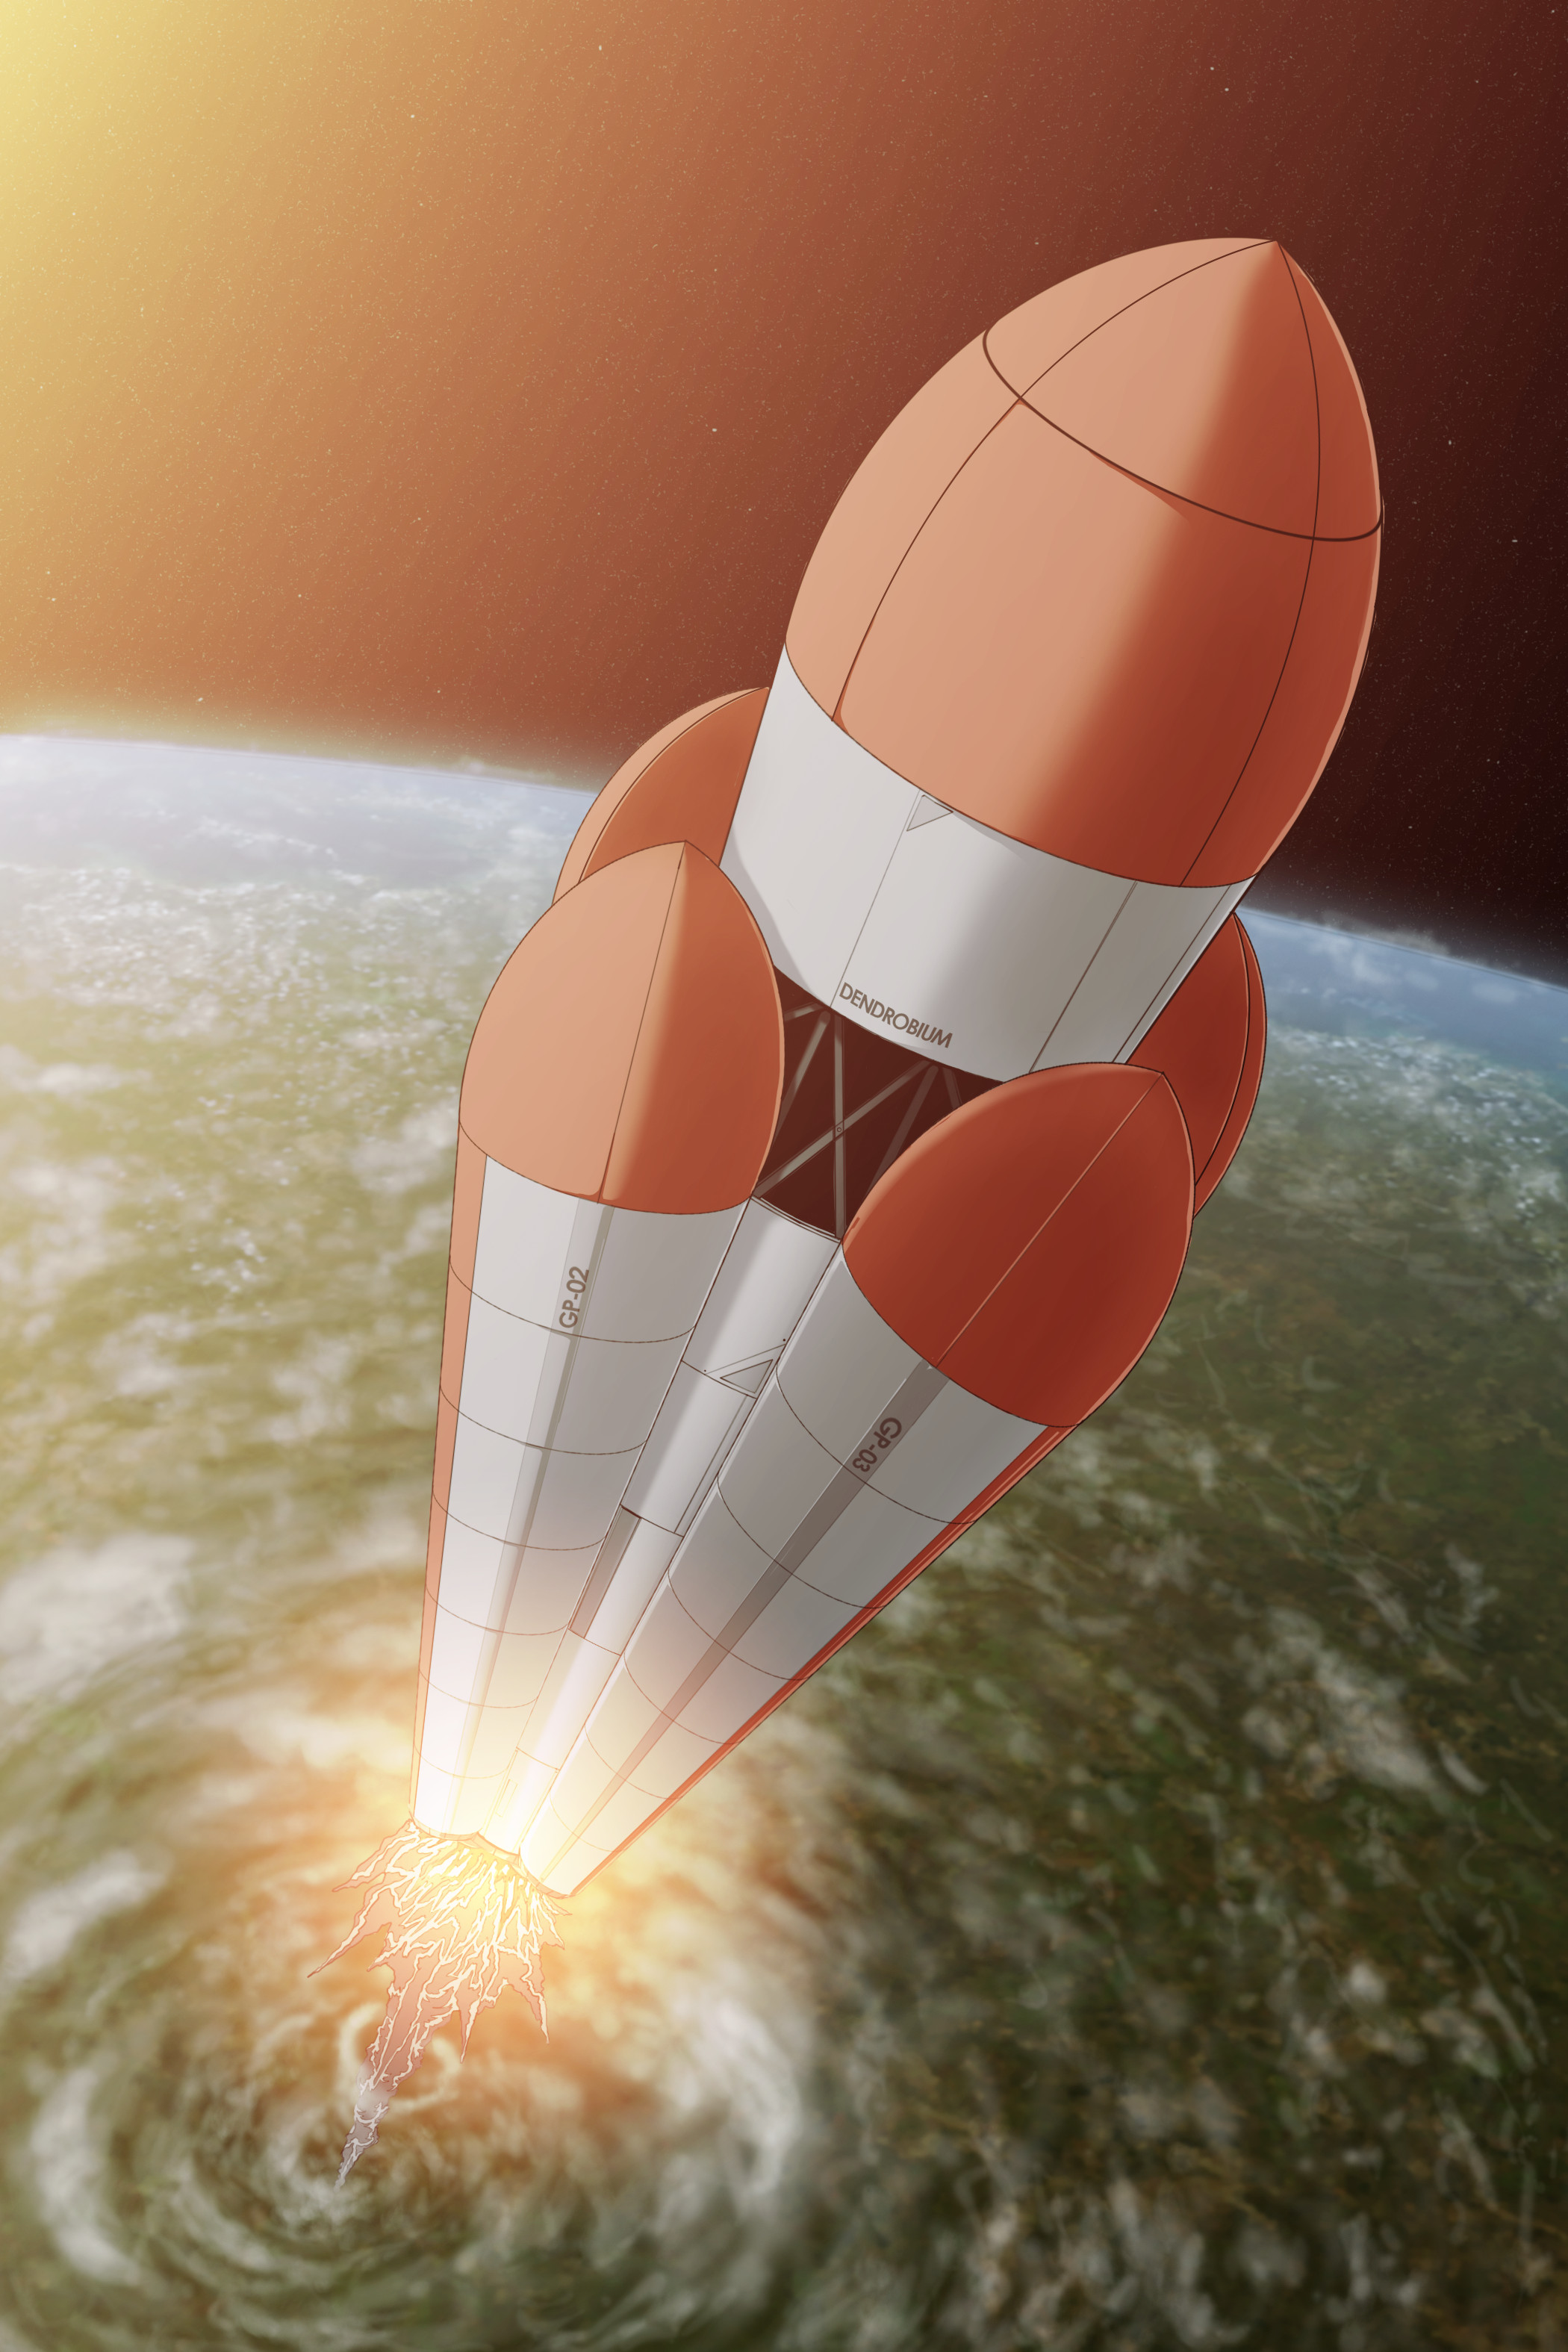 Launch of the Dendrobium Rocket